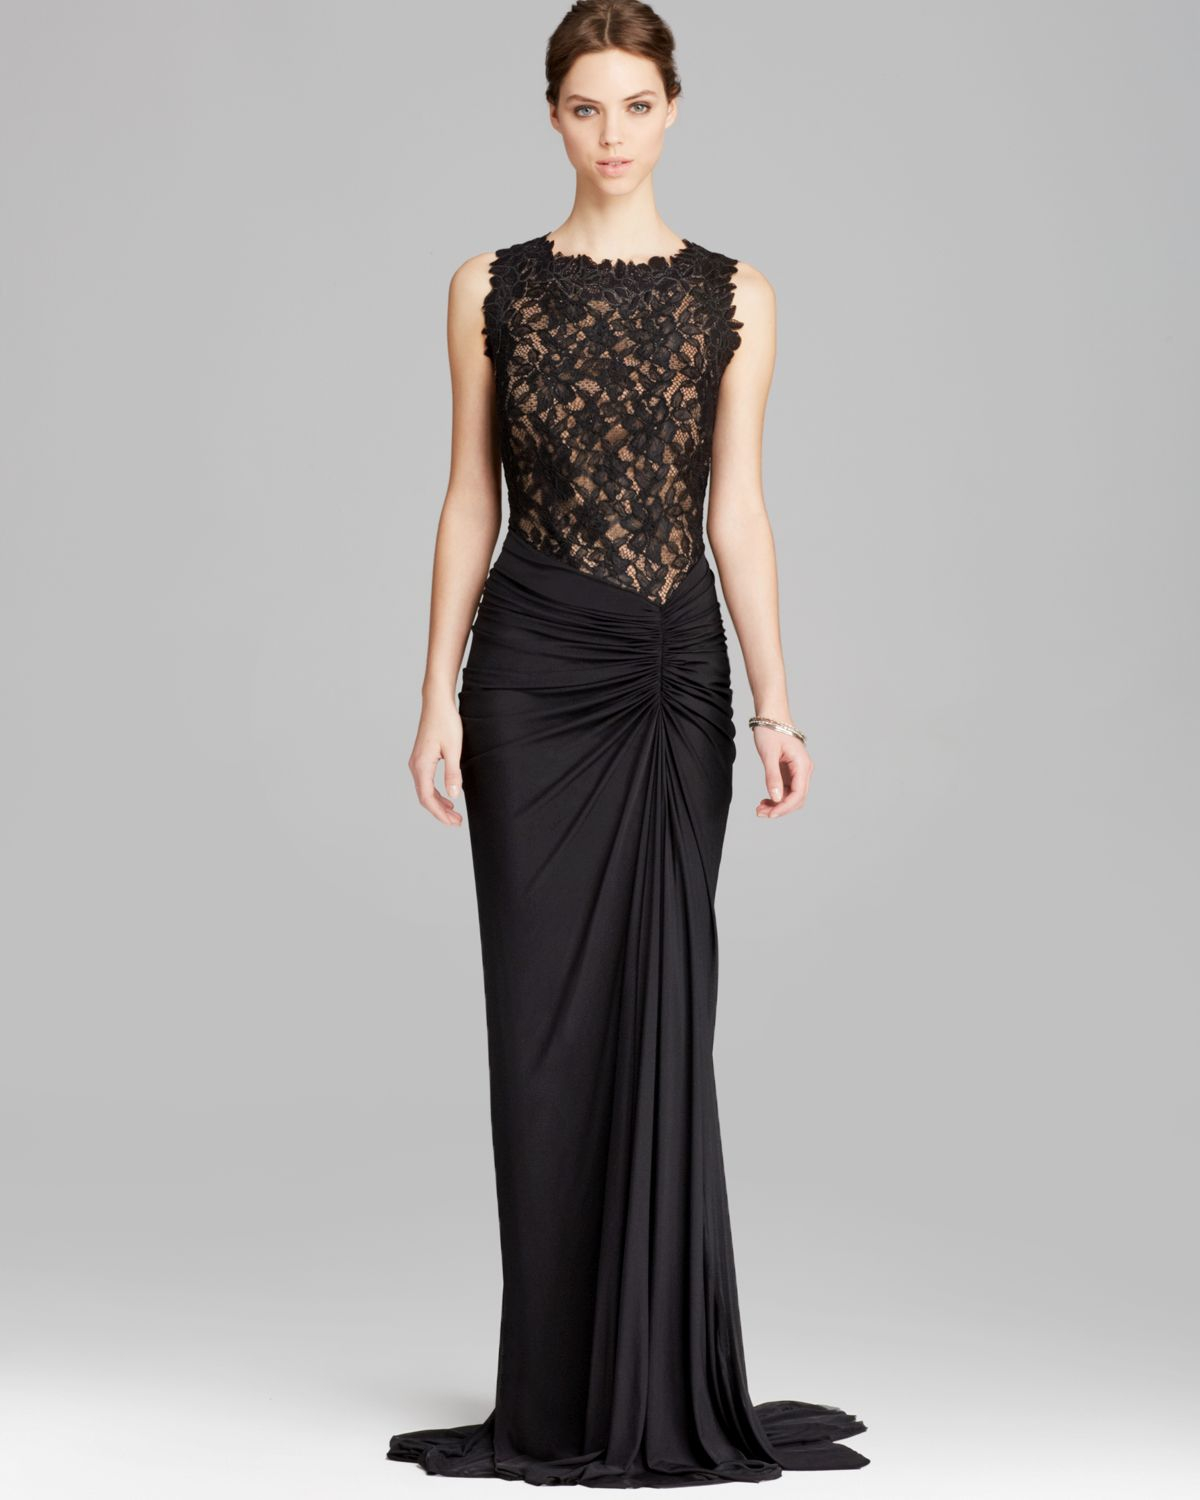 Lyst - Tadashi Shoji Gown - Sleeveless Lace Ruched Tulle in Black